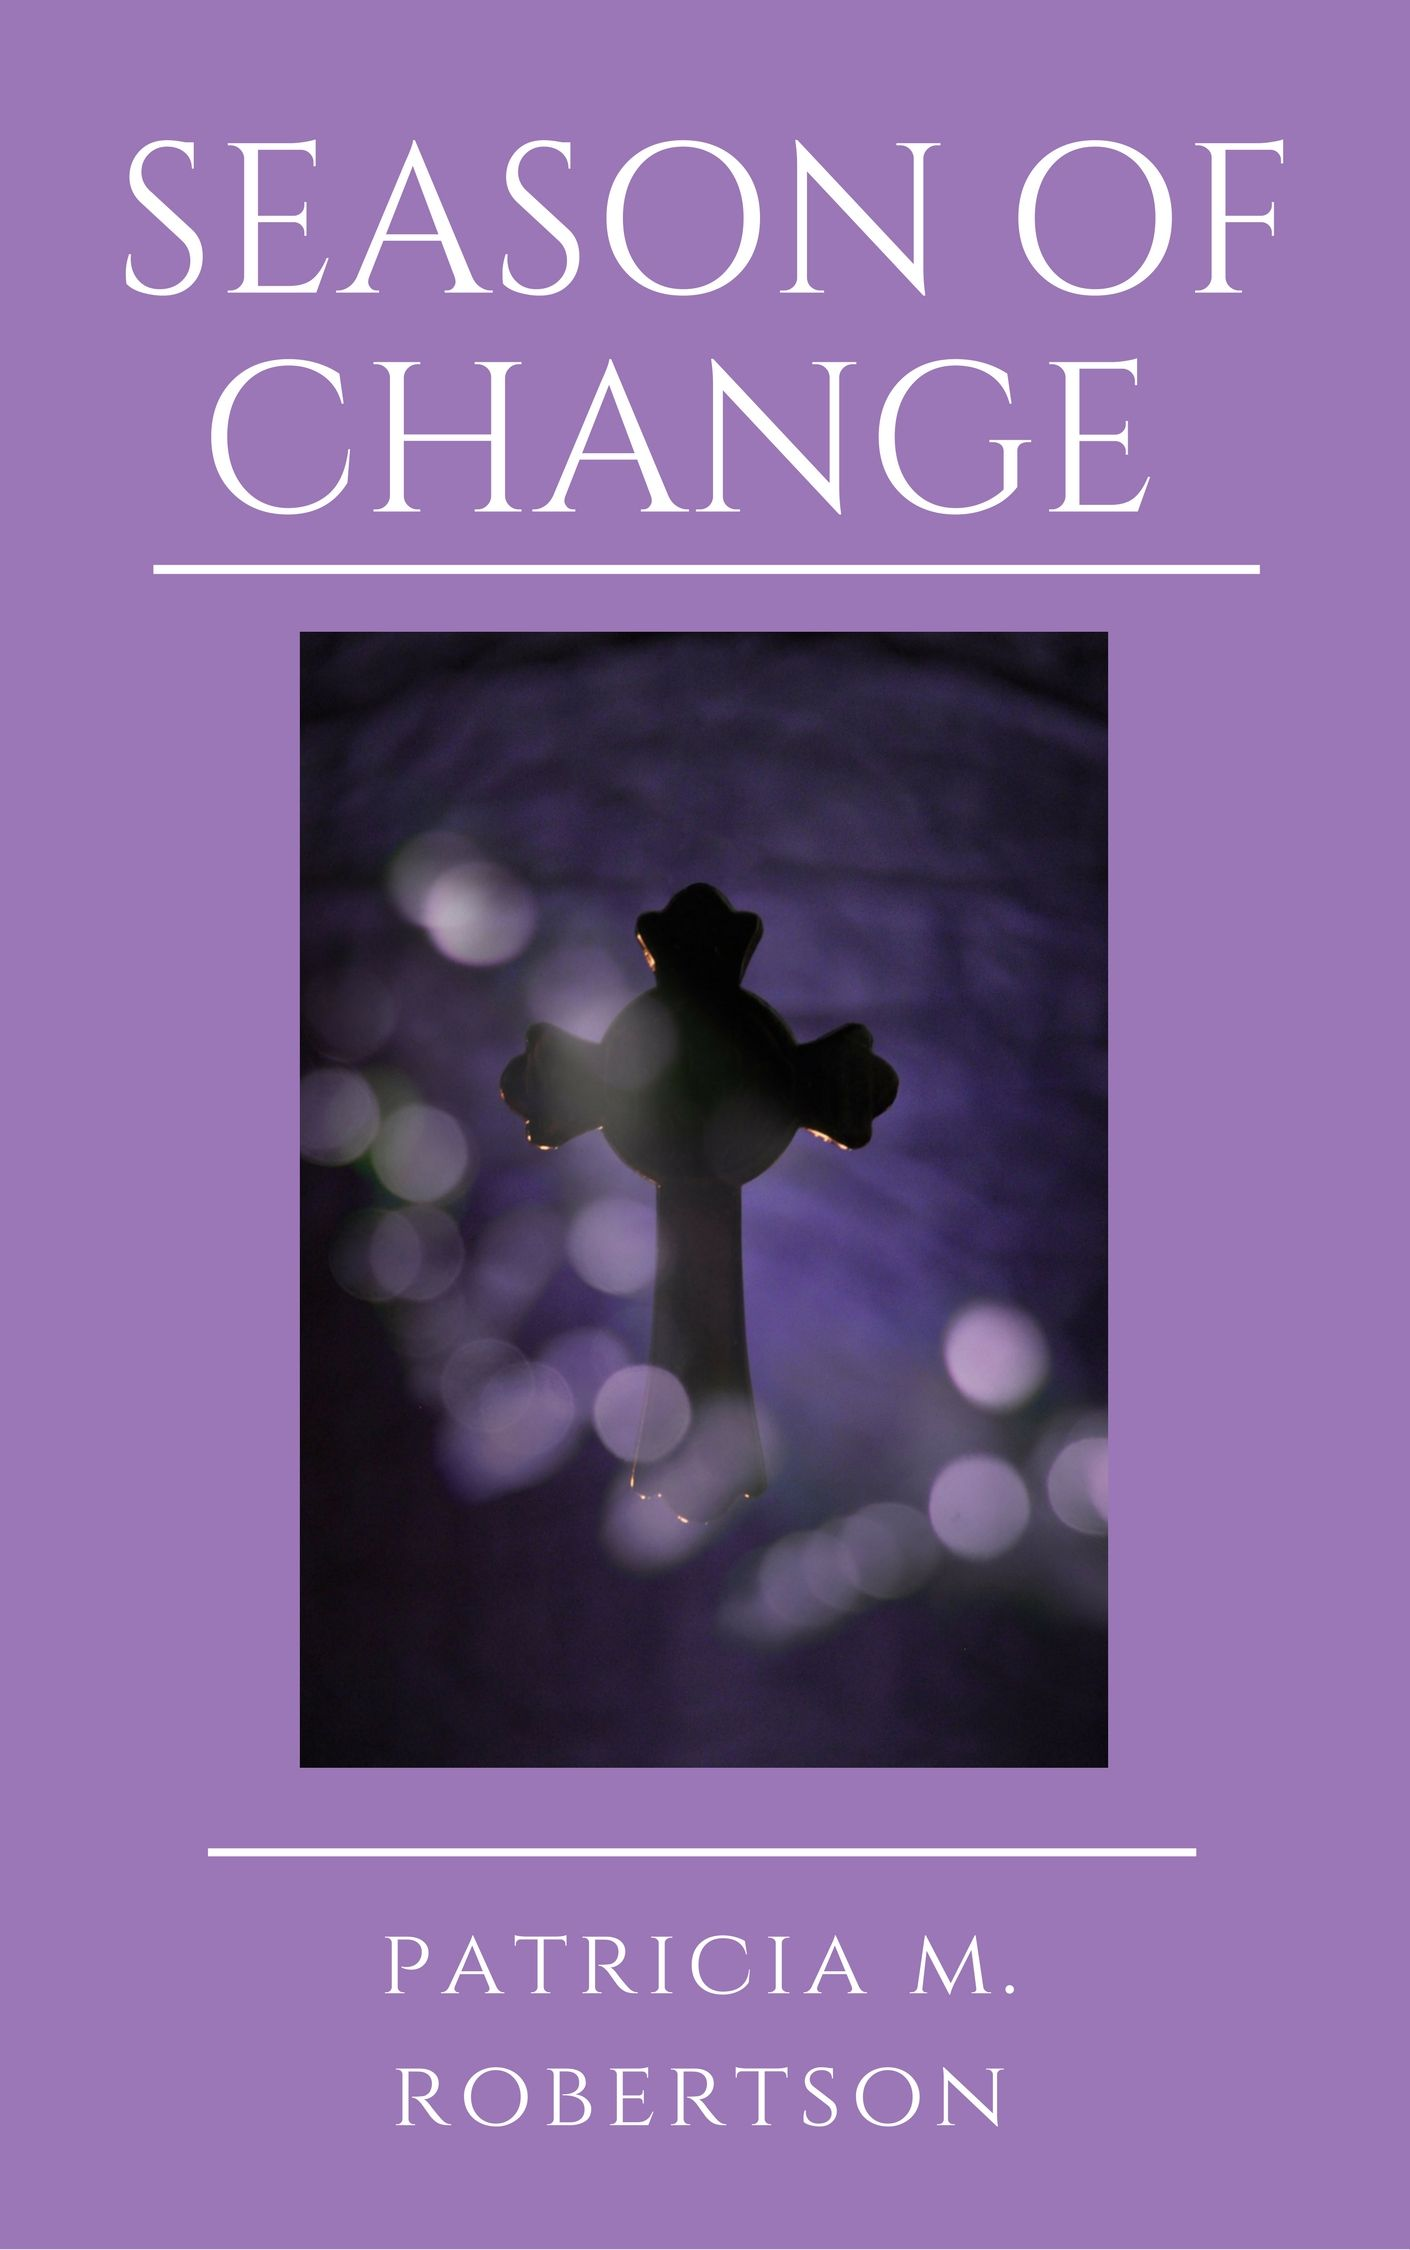 The Season Of Lent Challenges Us To Consciously Enter Into